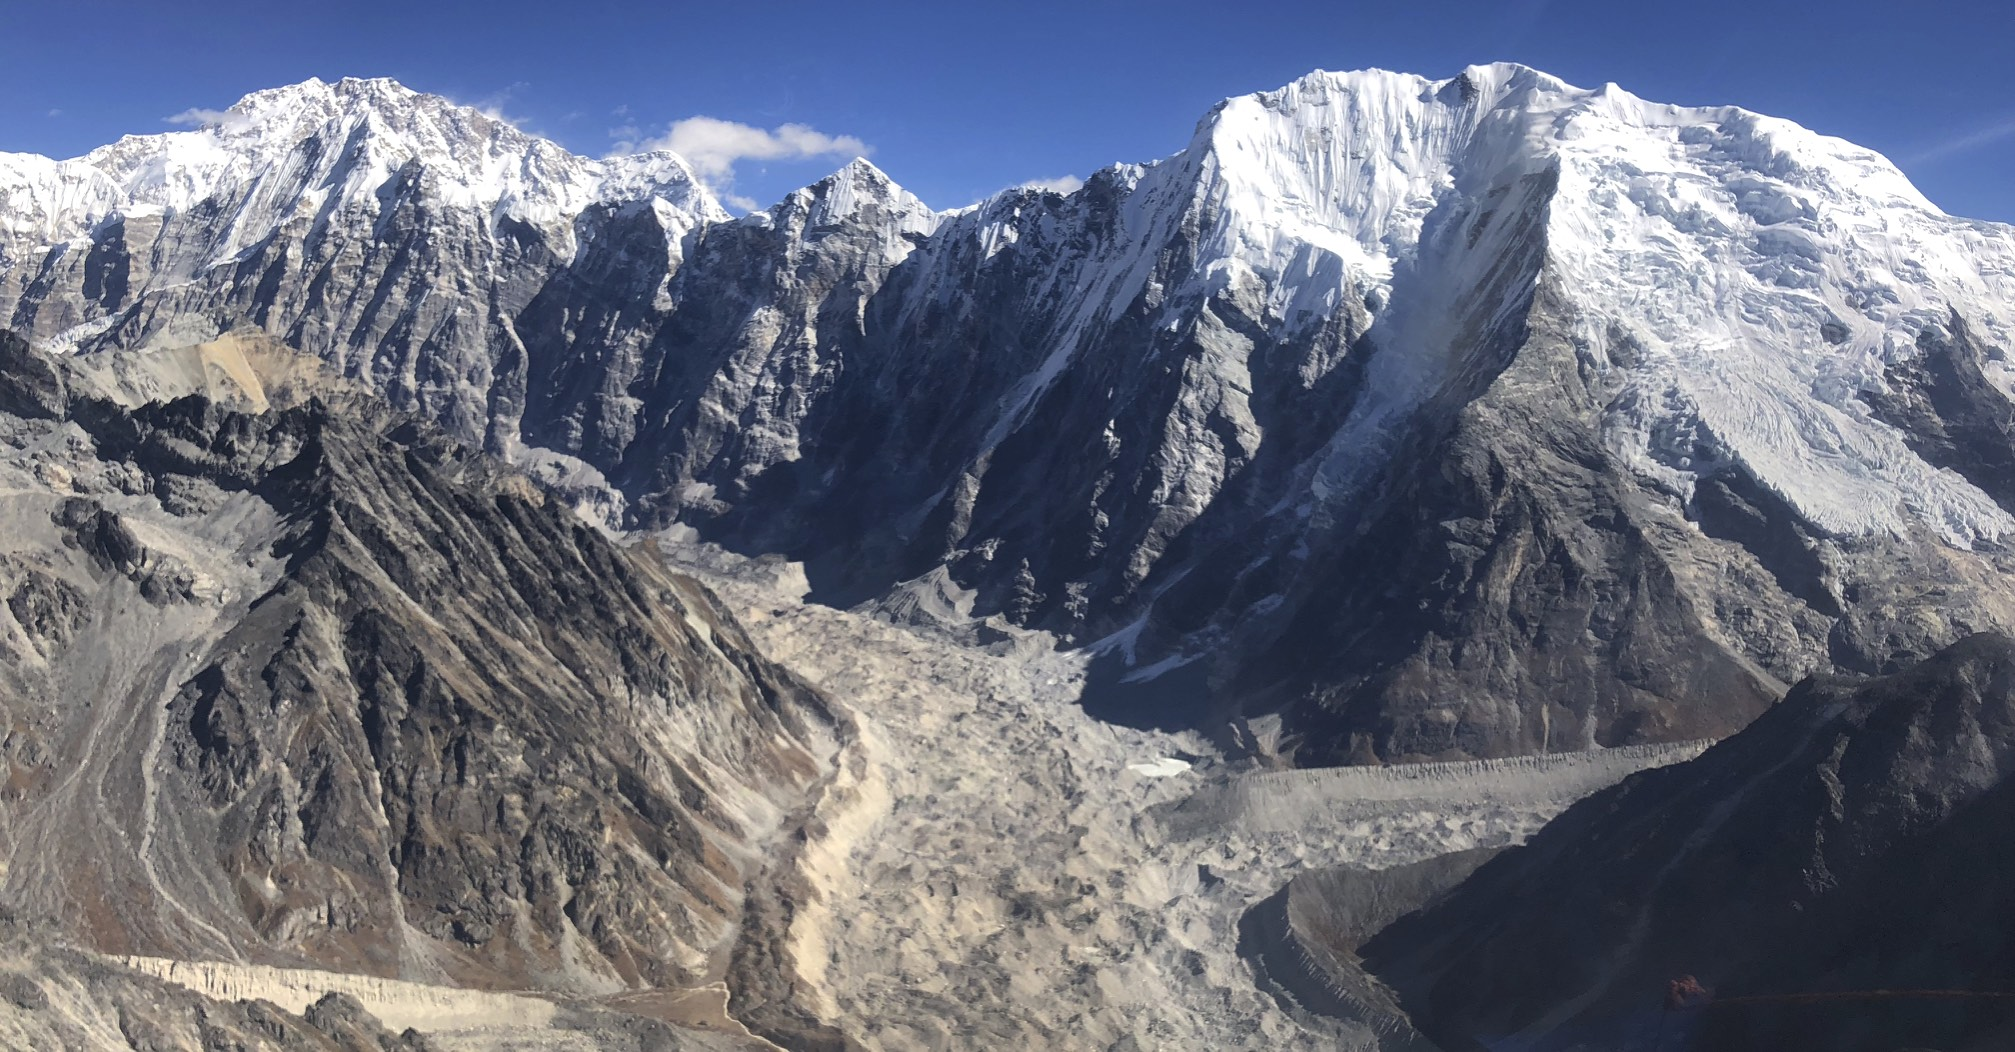 The Langtang Glacier, Mt. Shishapangma far away (on the left) and Mt. Pemthang Karpo Ri (22,500ft) on the right.